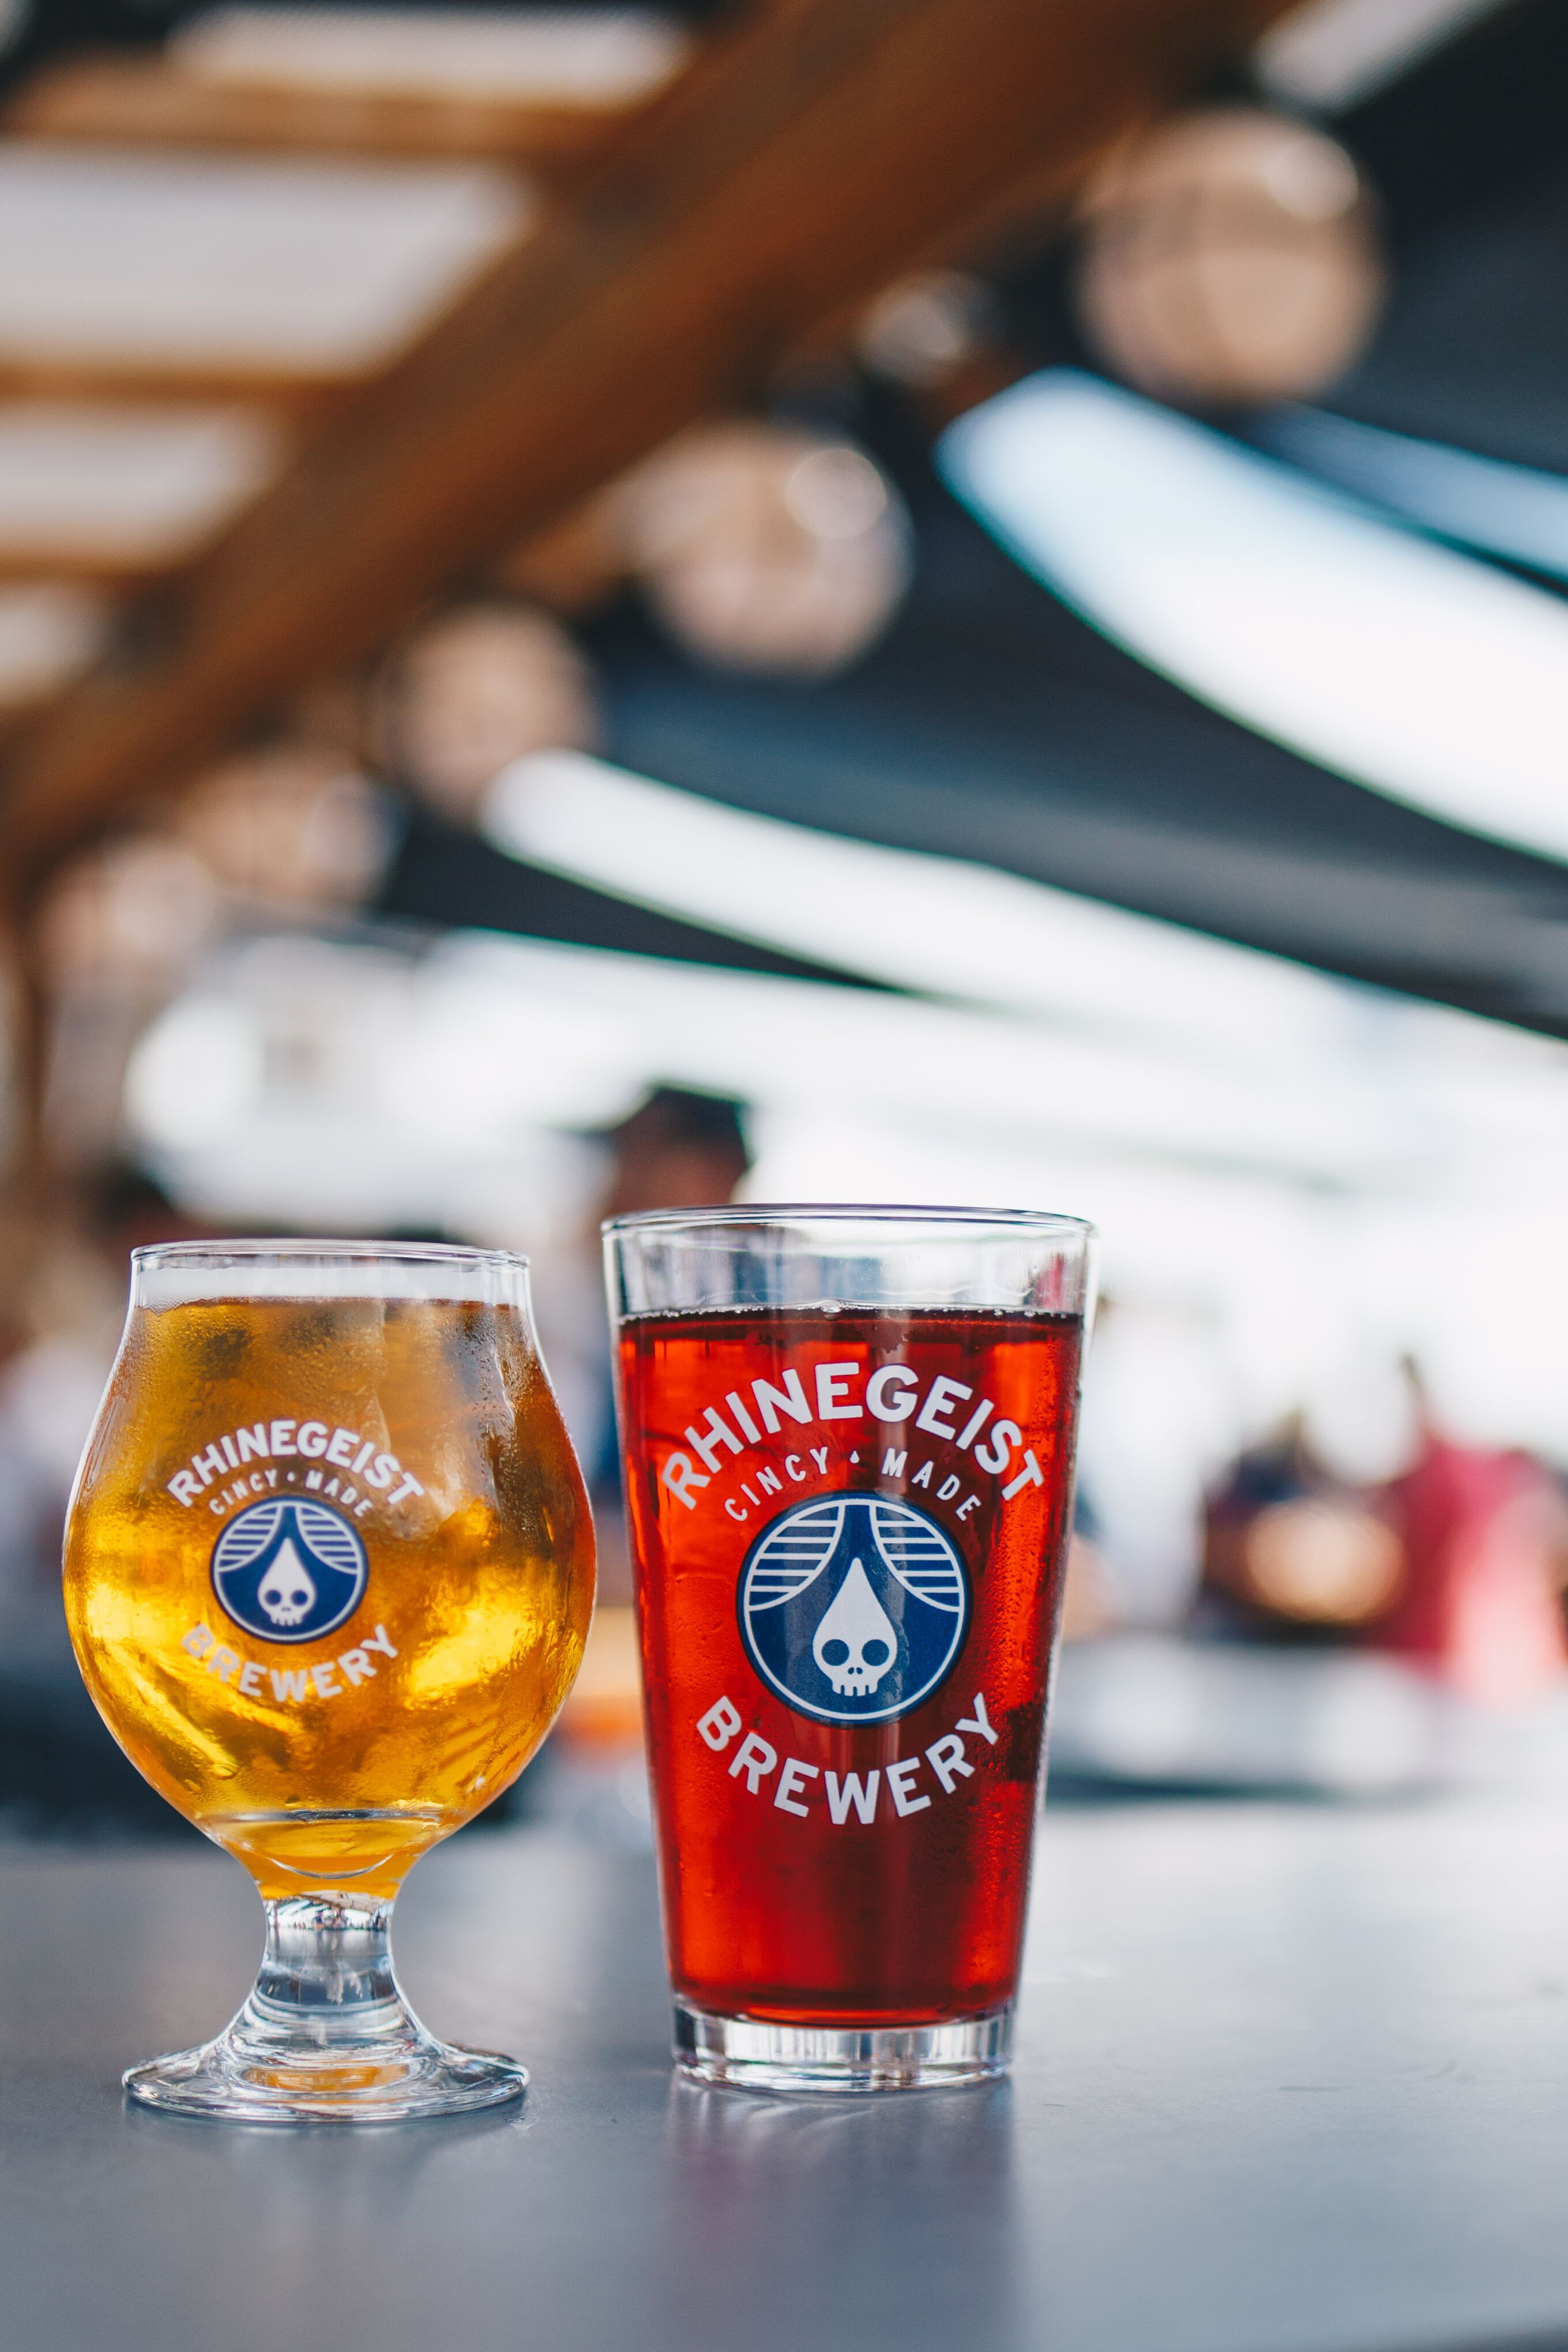 Rhinegeist (Brewery) / ADDRESS: 1910 Elm St., OTR / PHONE: 513-381-1367 / Image: Catherine Viox{ }// Published: 3.17.20